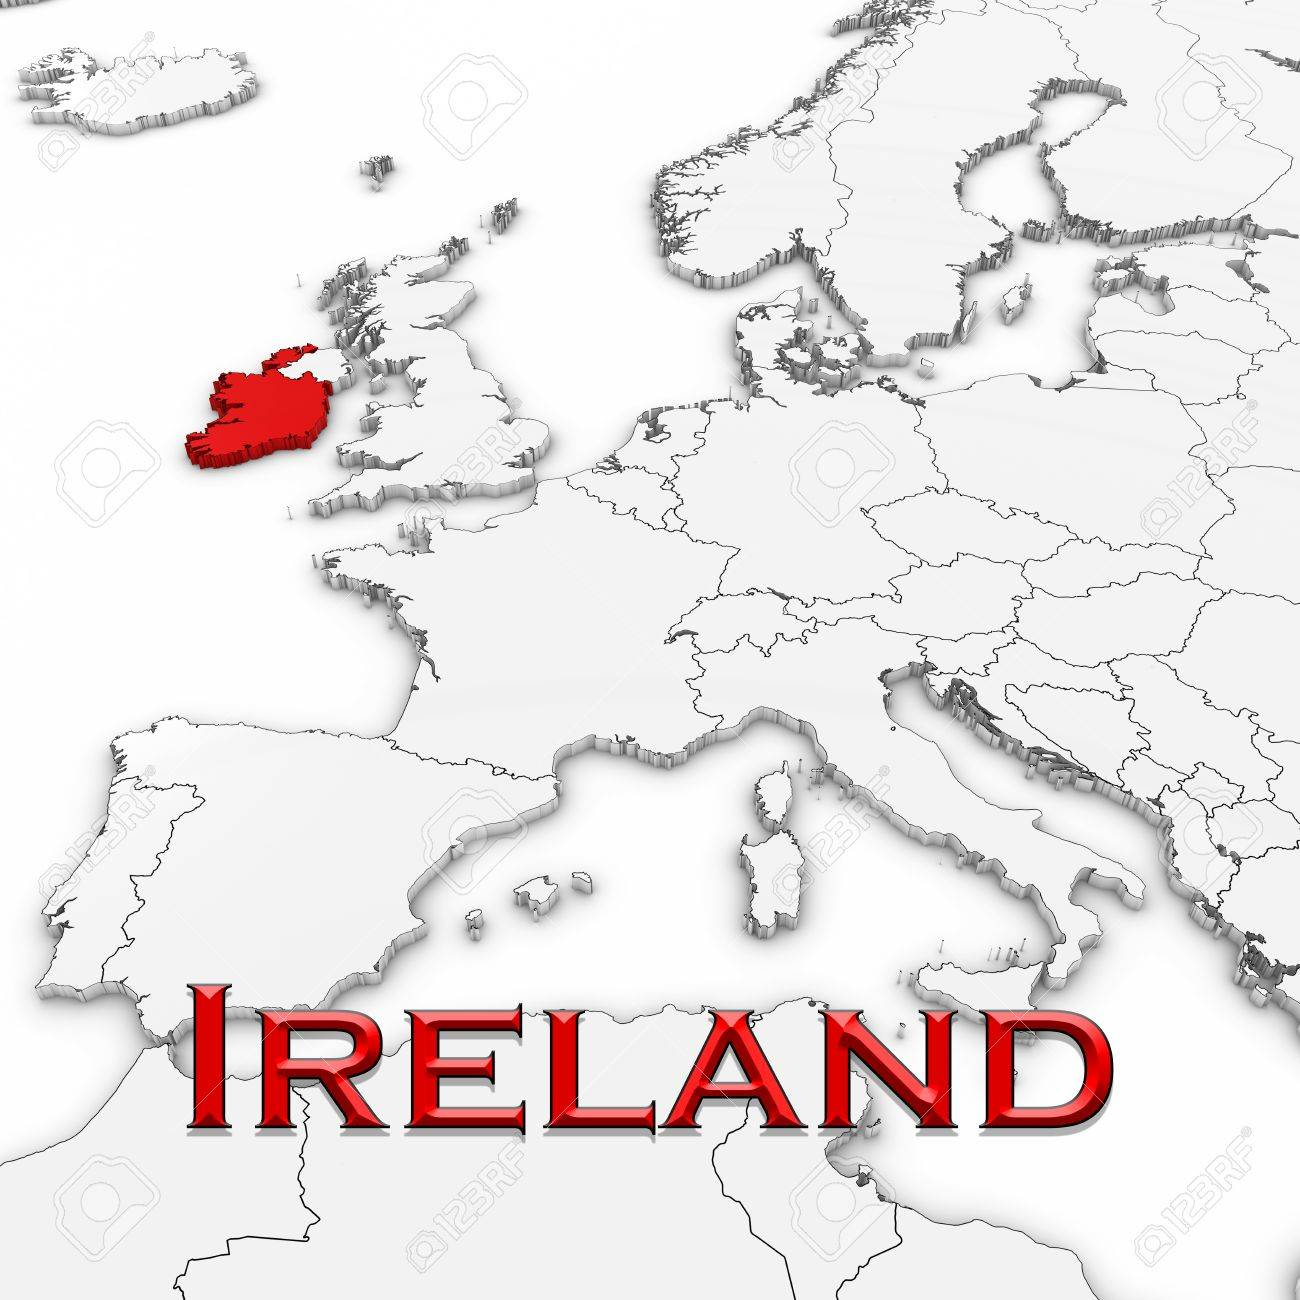 Country Map Of Ireland.3d Map Of Ireland With Country Name Highlighted Red On White Stock